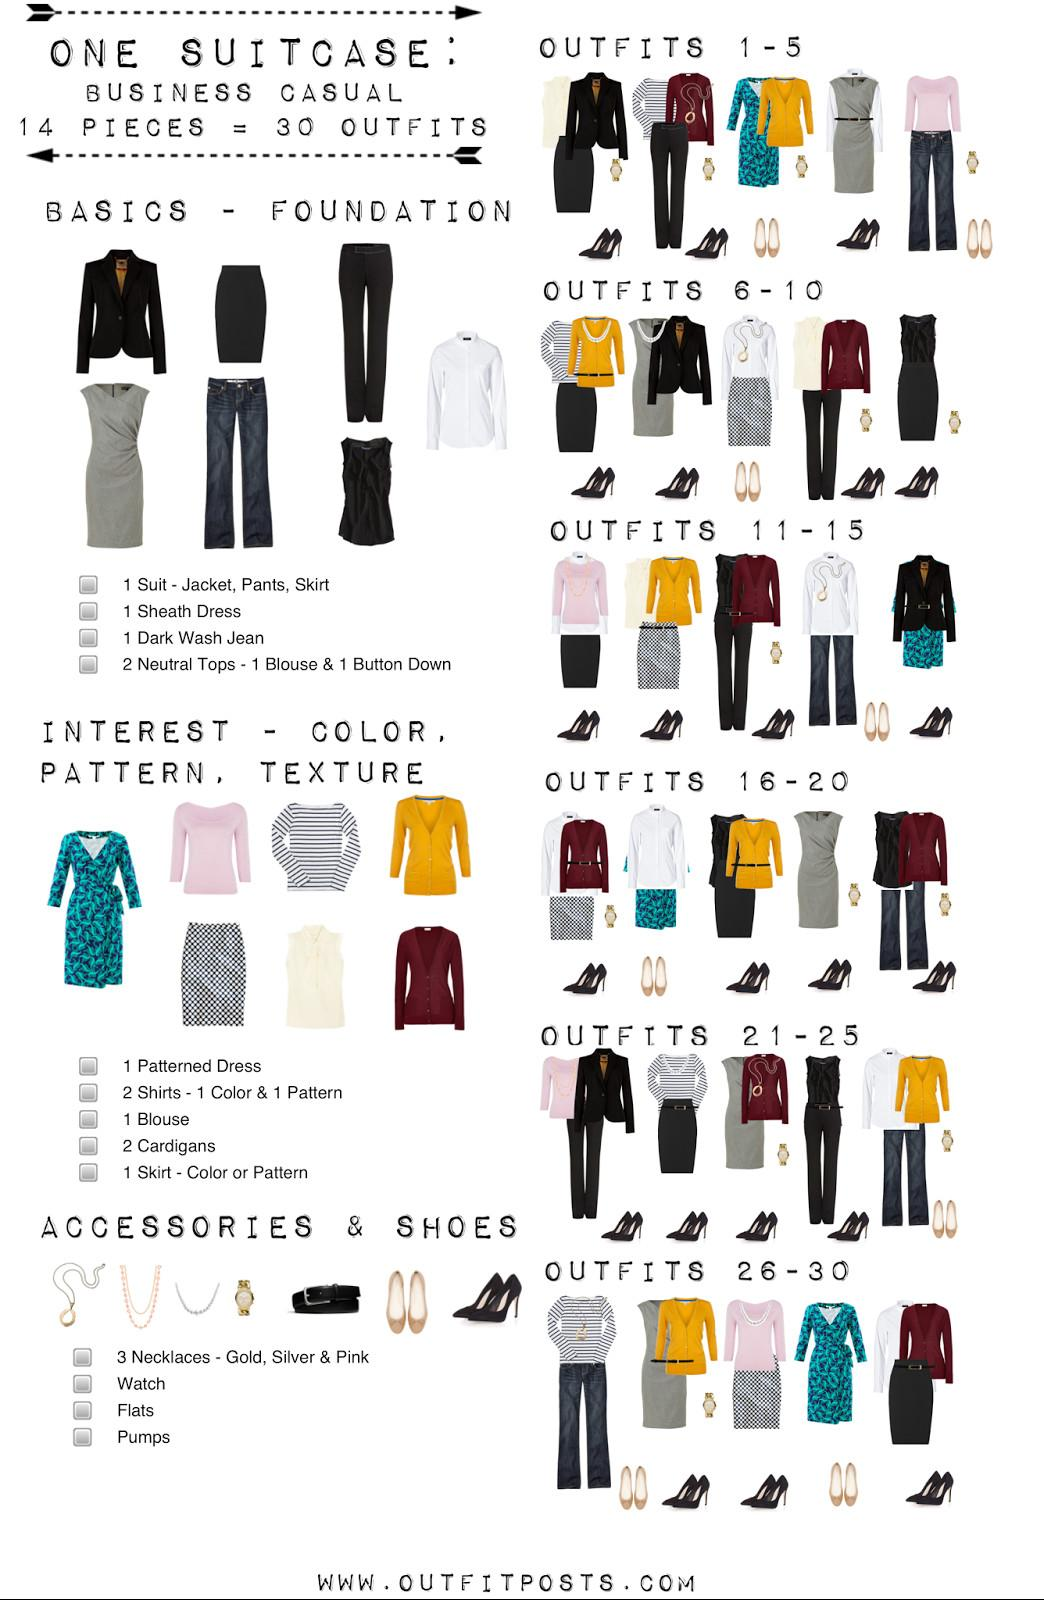 One Suitcase Business Casual Capsule Wardrobe